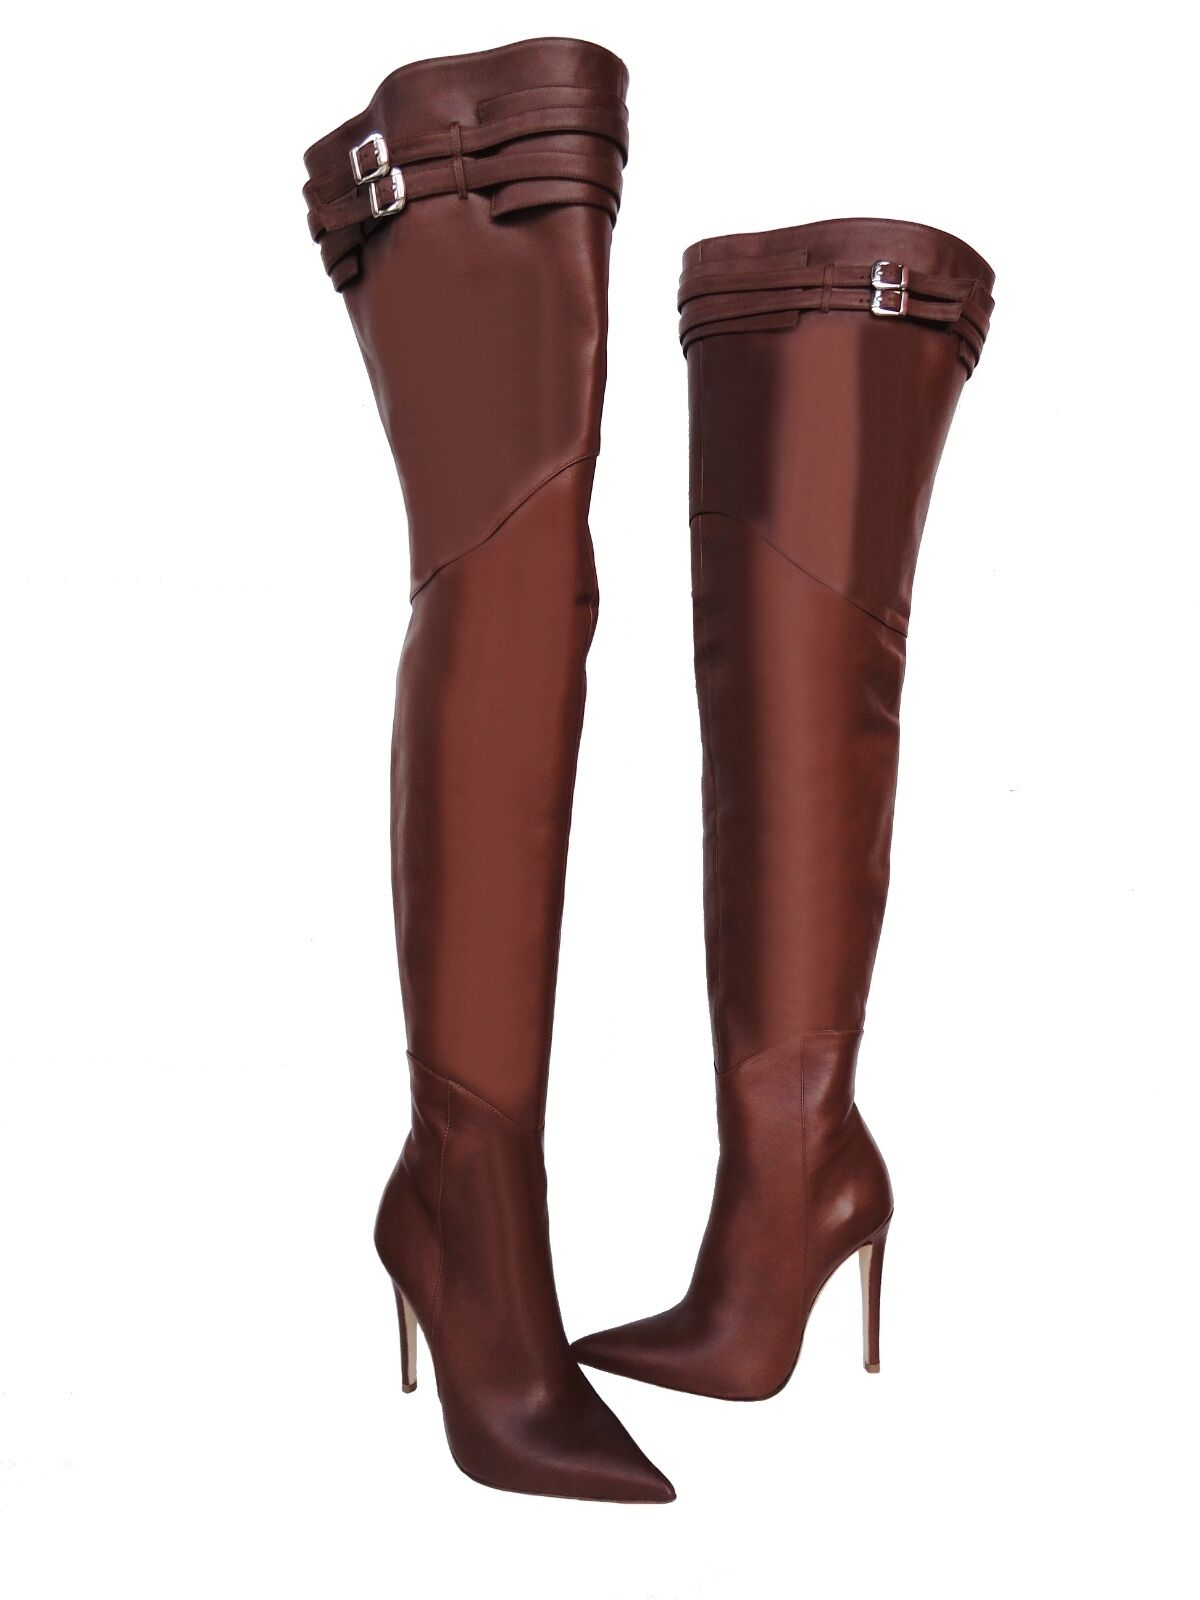 CQ COUTURE ITALY PEARLS NEW OVERKNEE BOOTS STIEFEL STIVALI